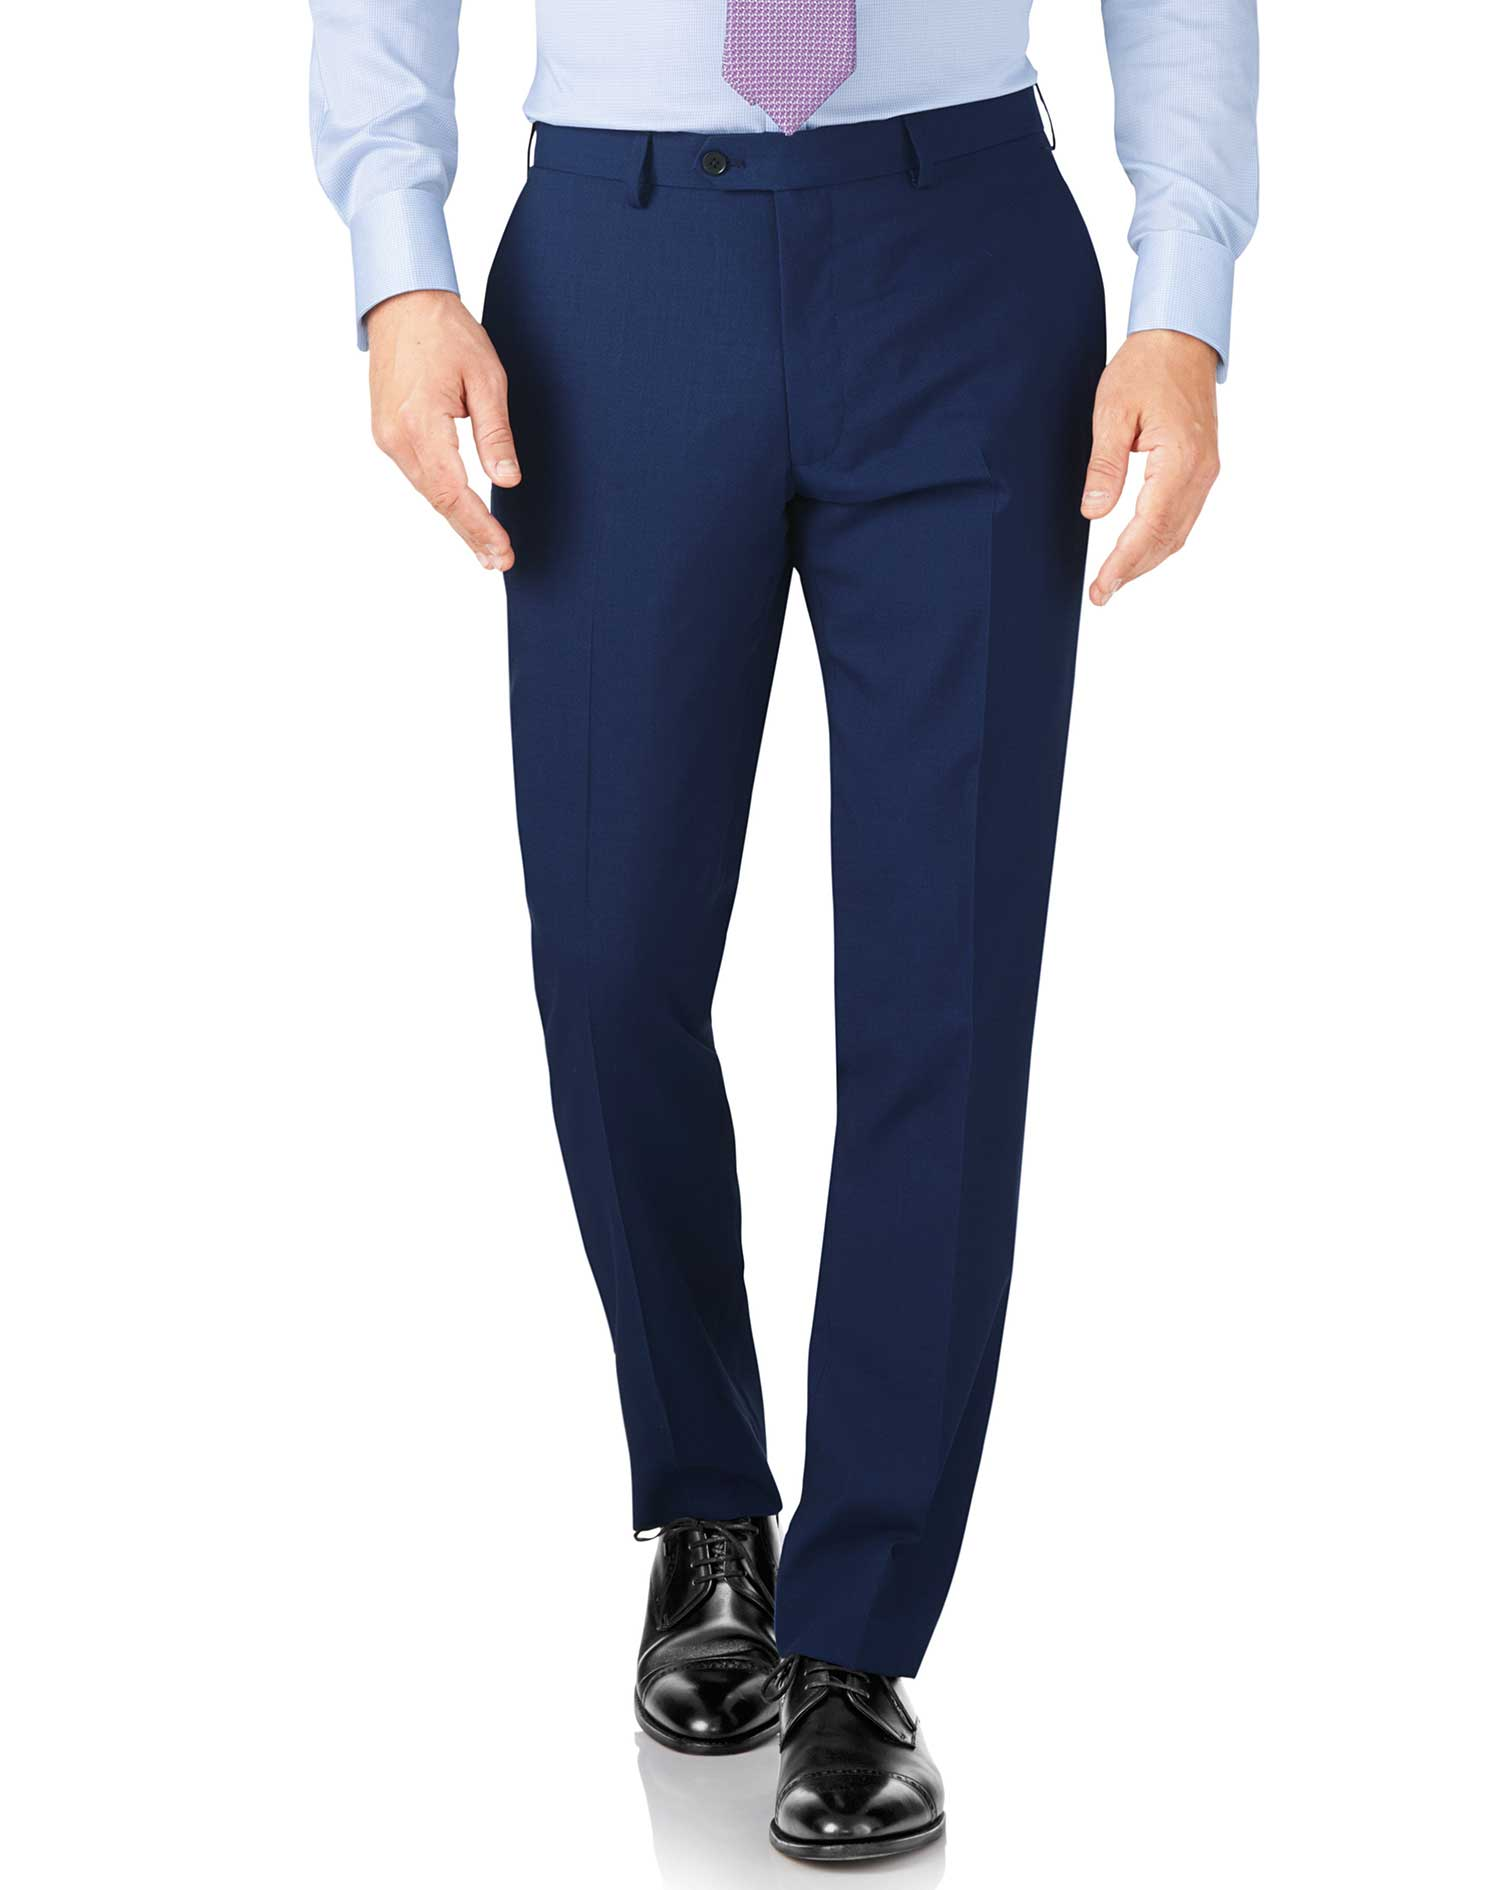 Royal Blue Slim Fit Crepe Business Suit Trousers Size W42 L38 by Charles Tyrwhitt